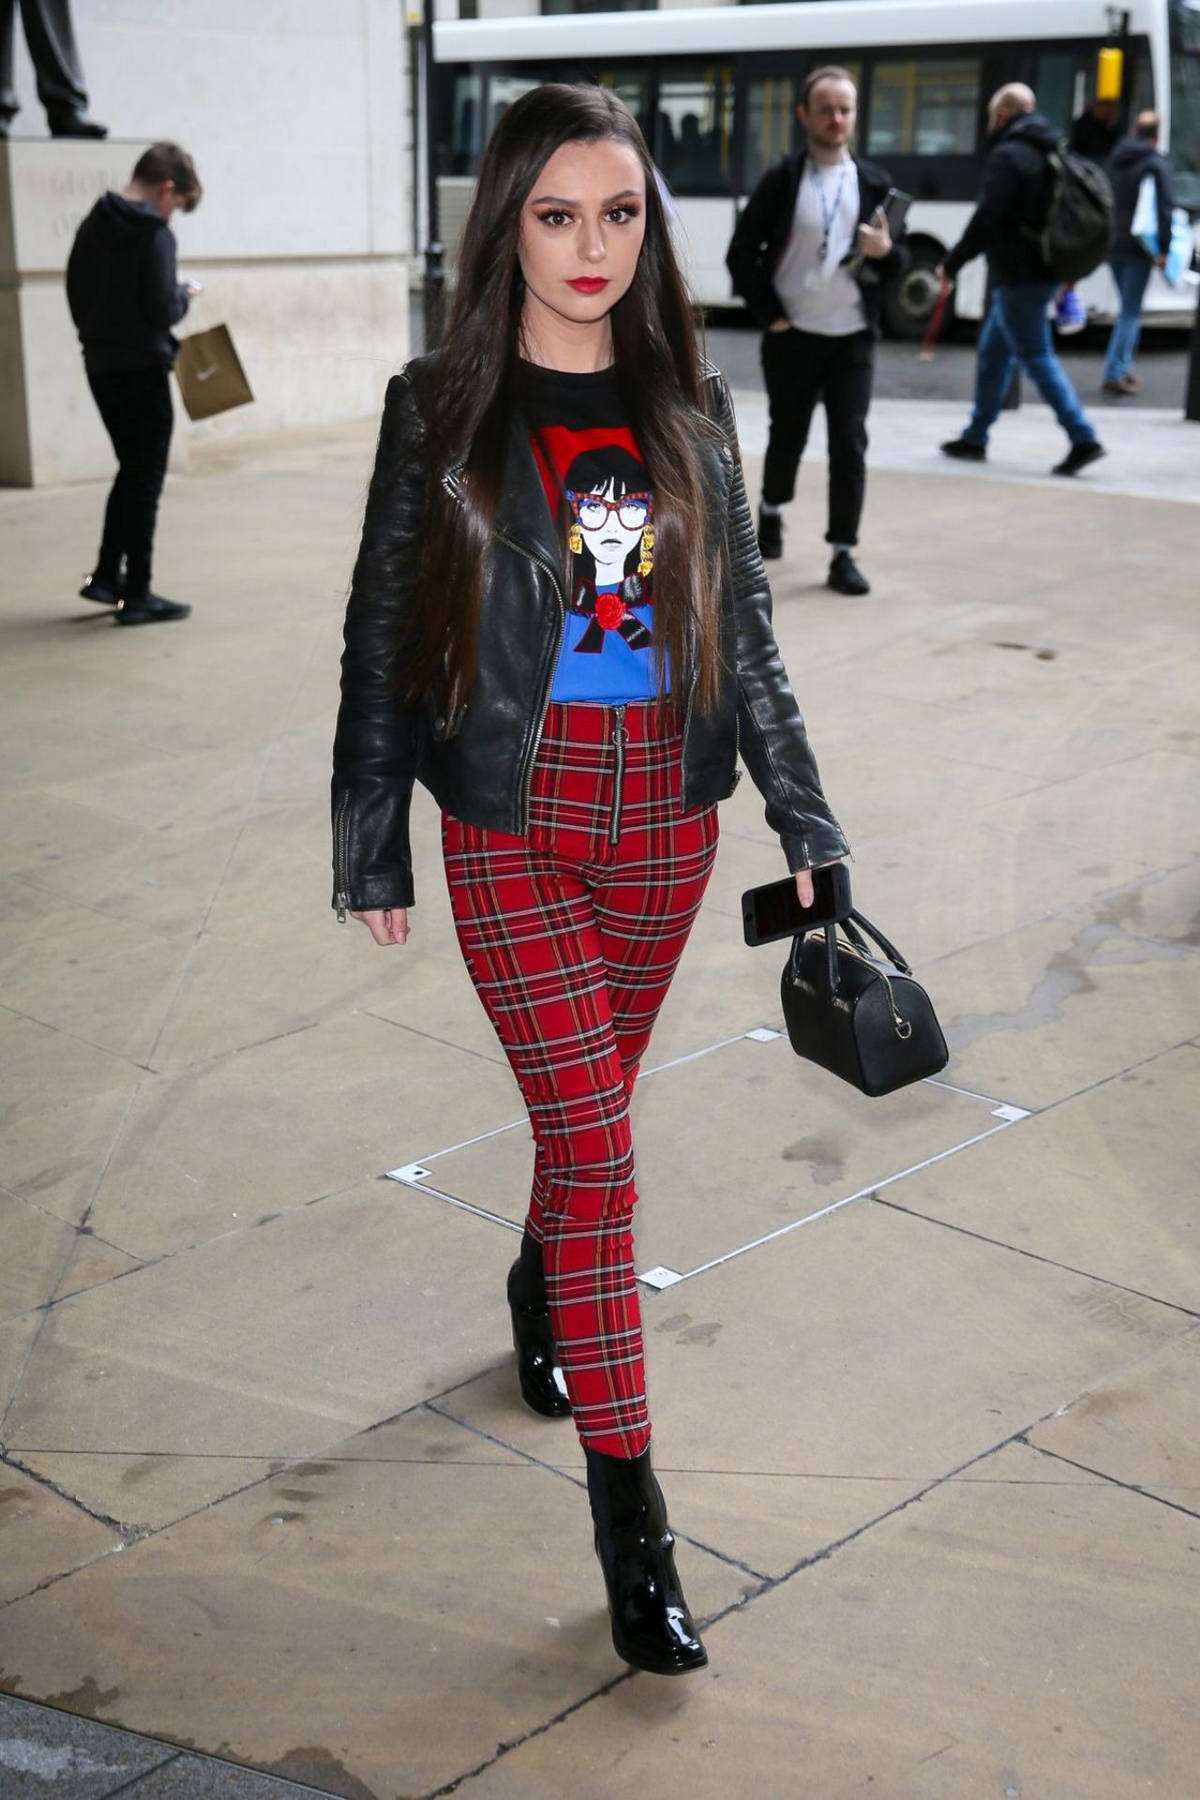 Cher Lloyd promotes her new single at BBC Radio in London, UK